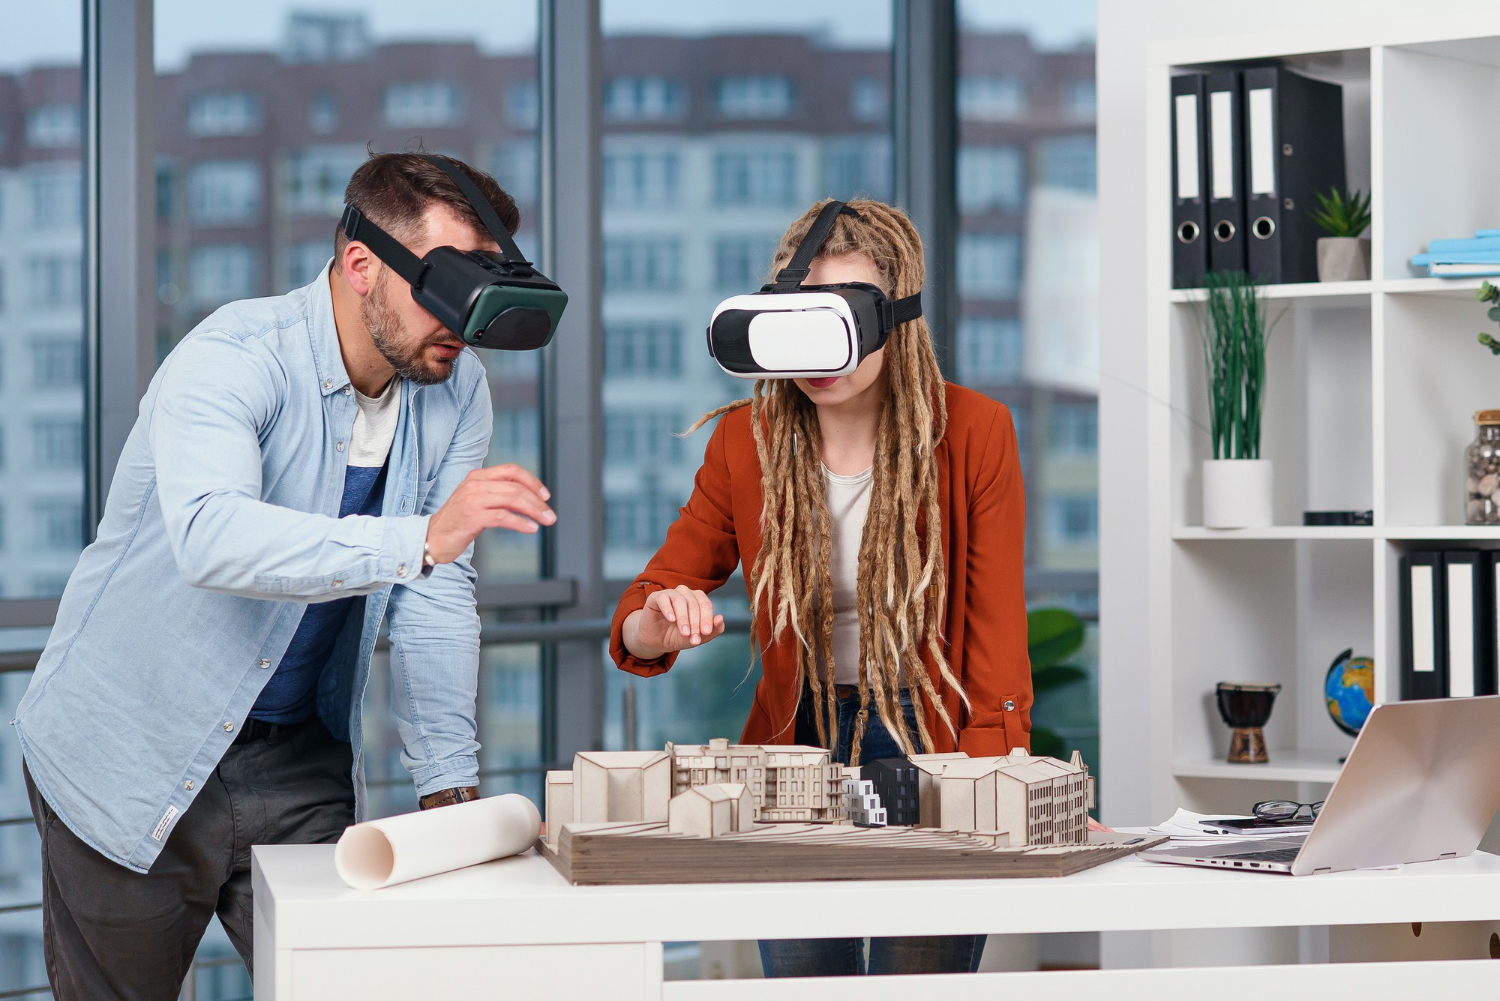 professional-architect-working-office-desk-wearing-vr-headset-he-is-viewing-virtual-reality-interface